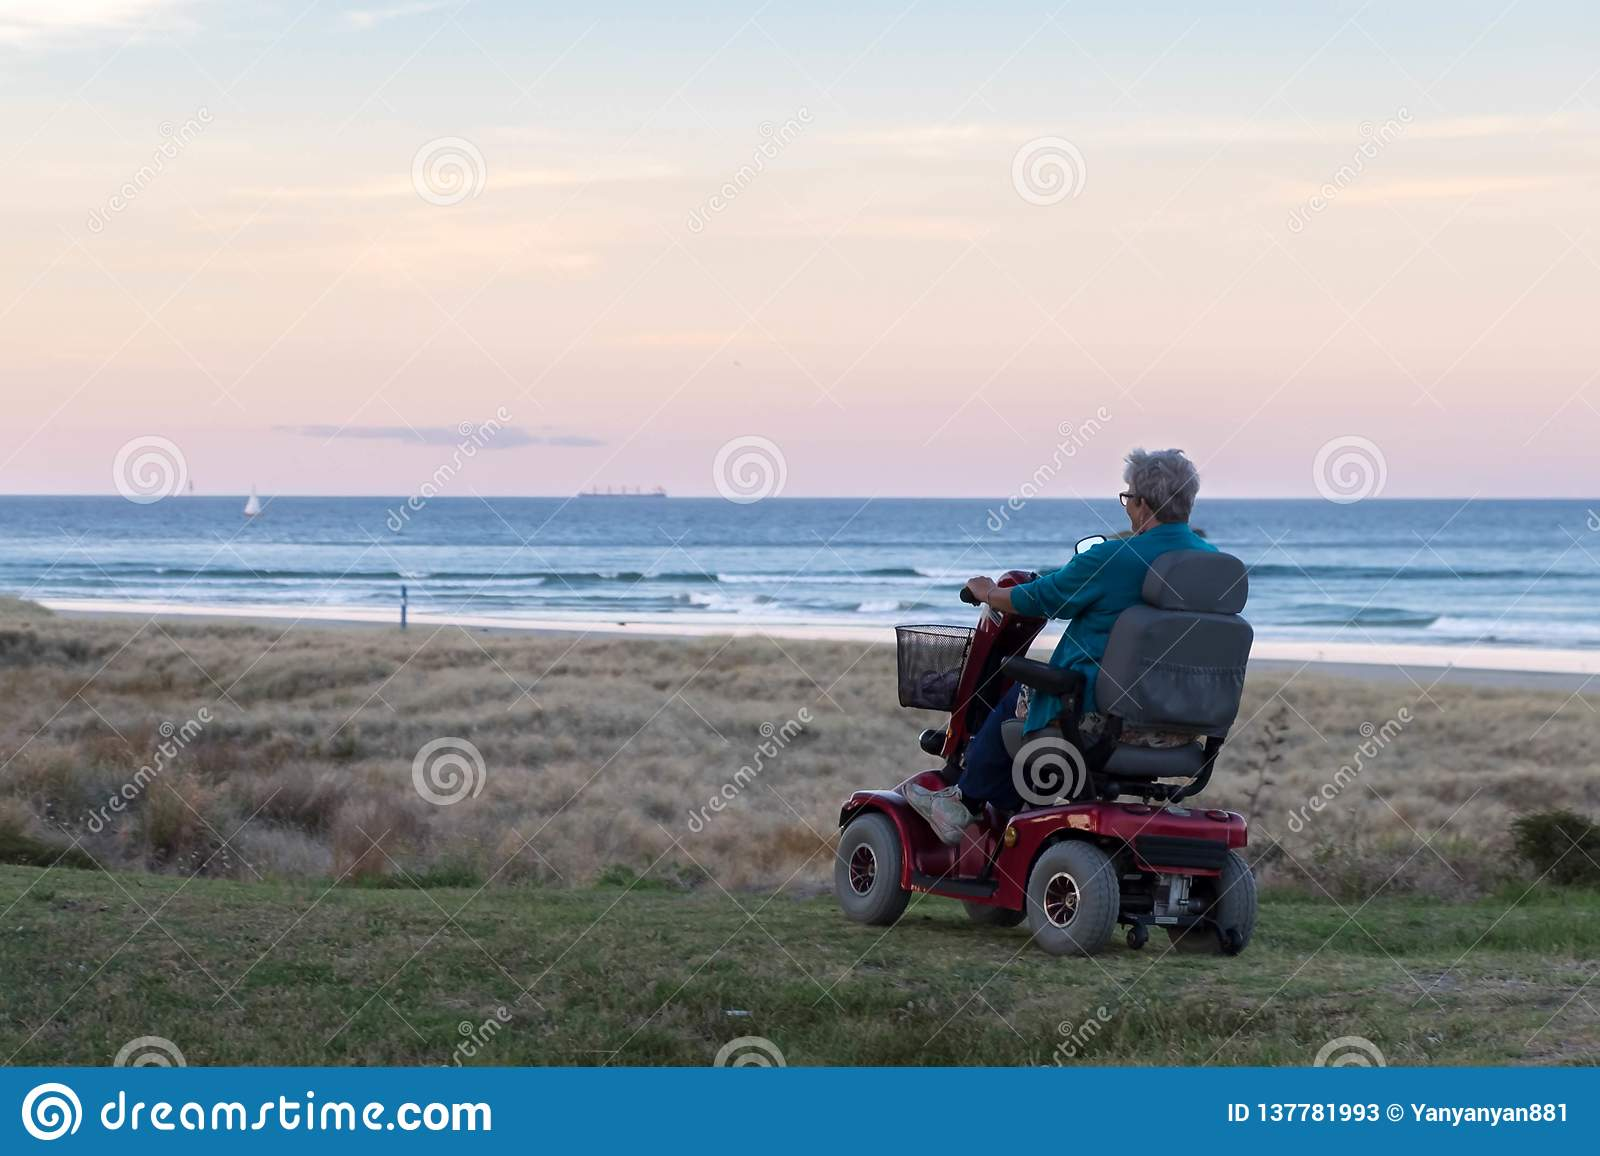 An old woman rides on a electric powered wheelchair parked on the beach at sunset time, in a lonely atmosphere. Lonely widow old